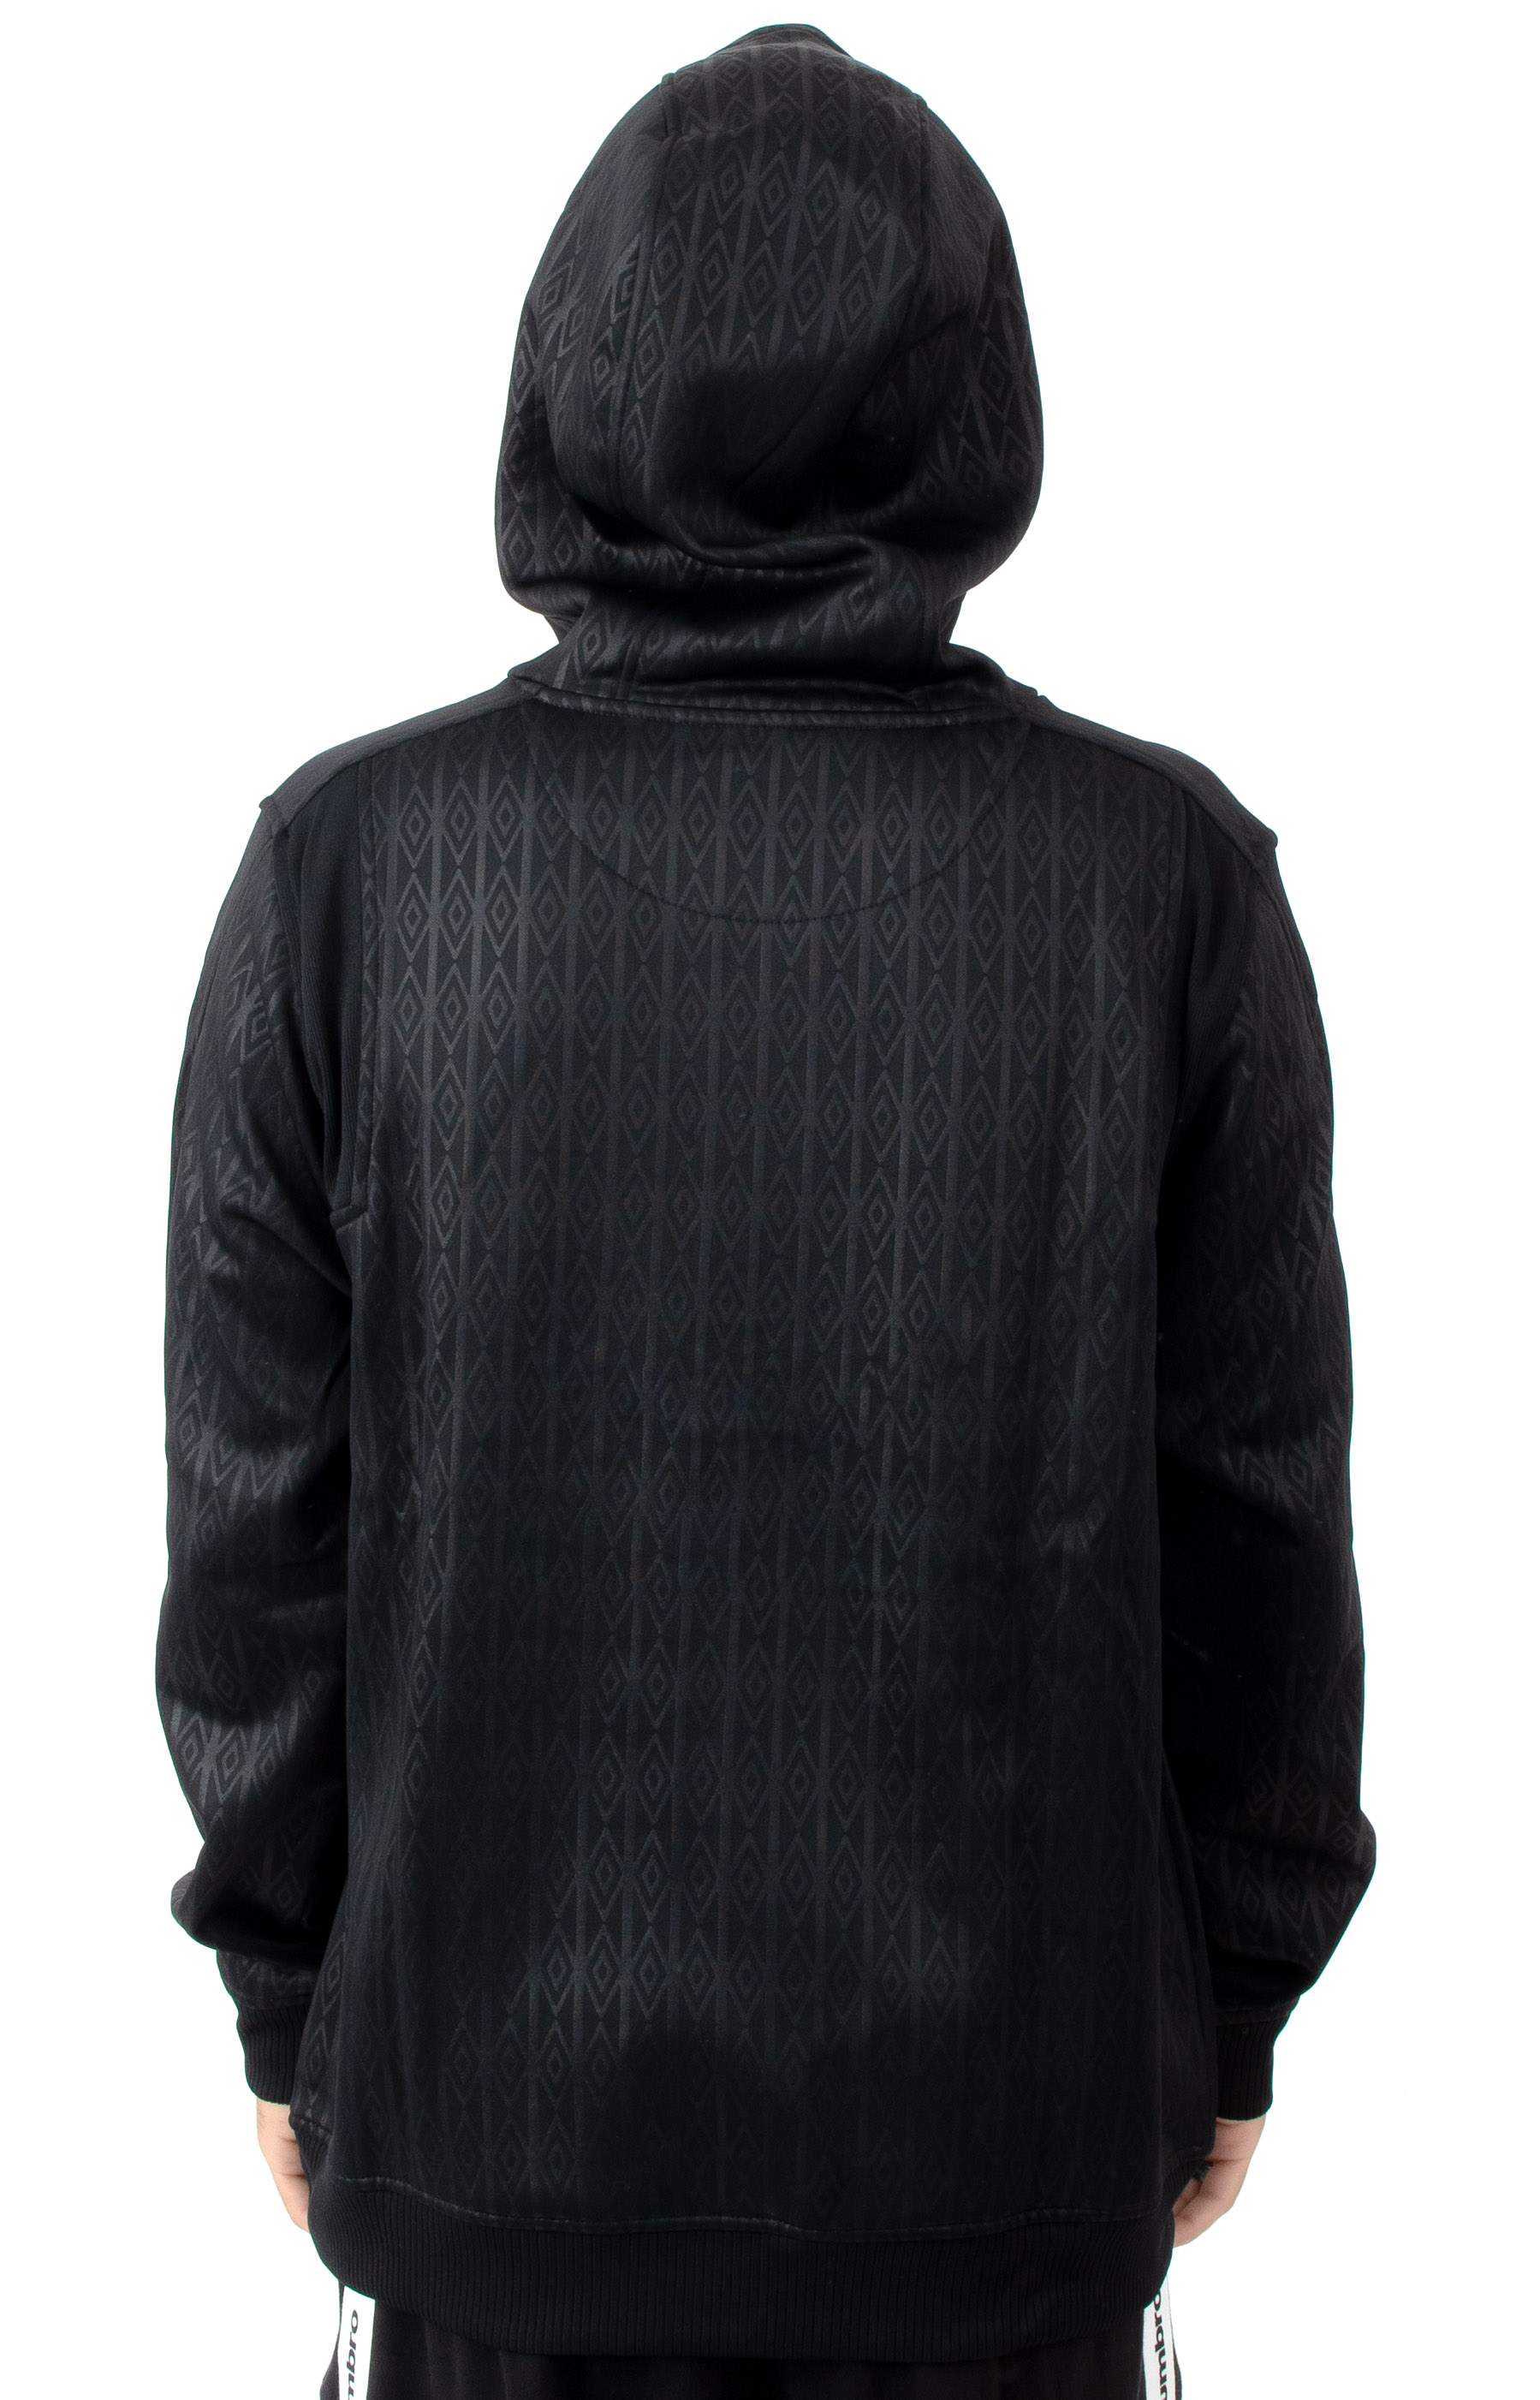 Goal Line Pullover Hoodie - Black/White 3